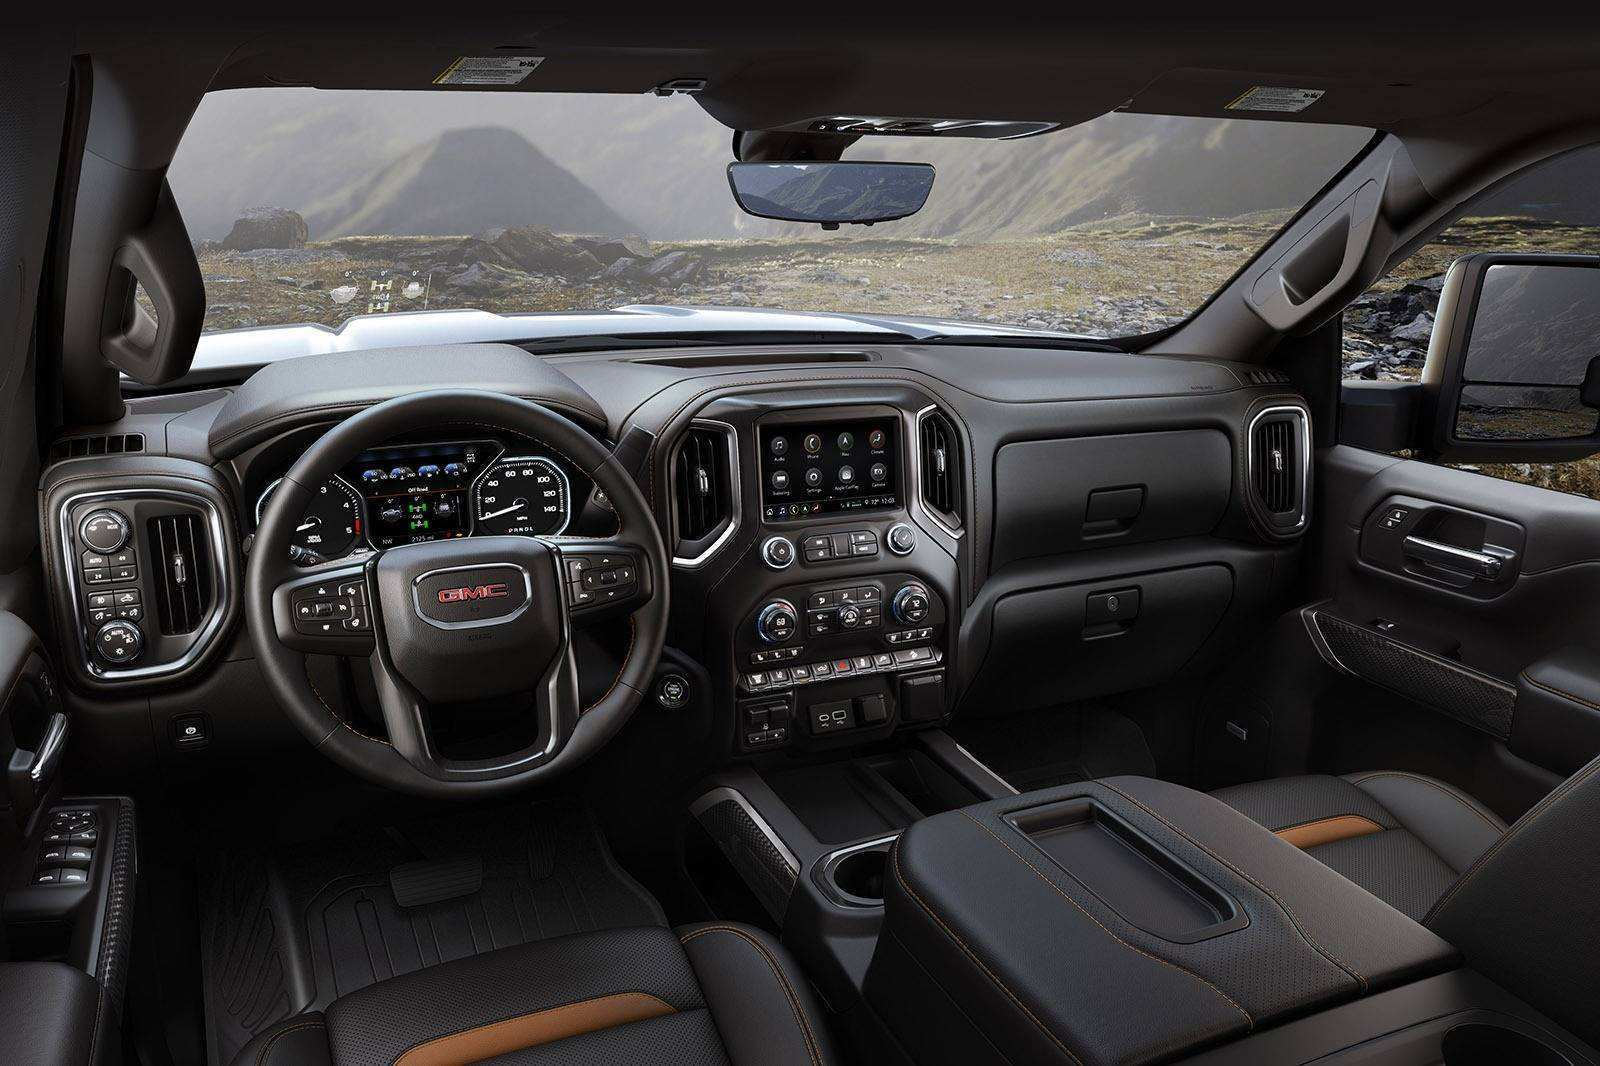 39 The 2020 GMC Sierra Hd Configurations for 2020 GMC Sierra Hd